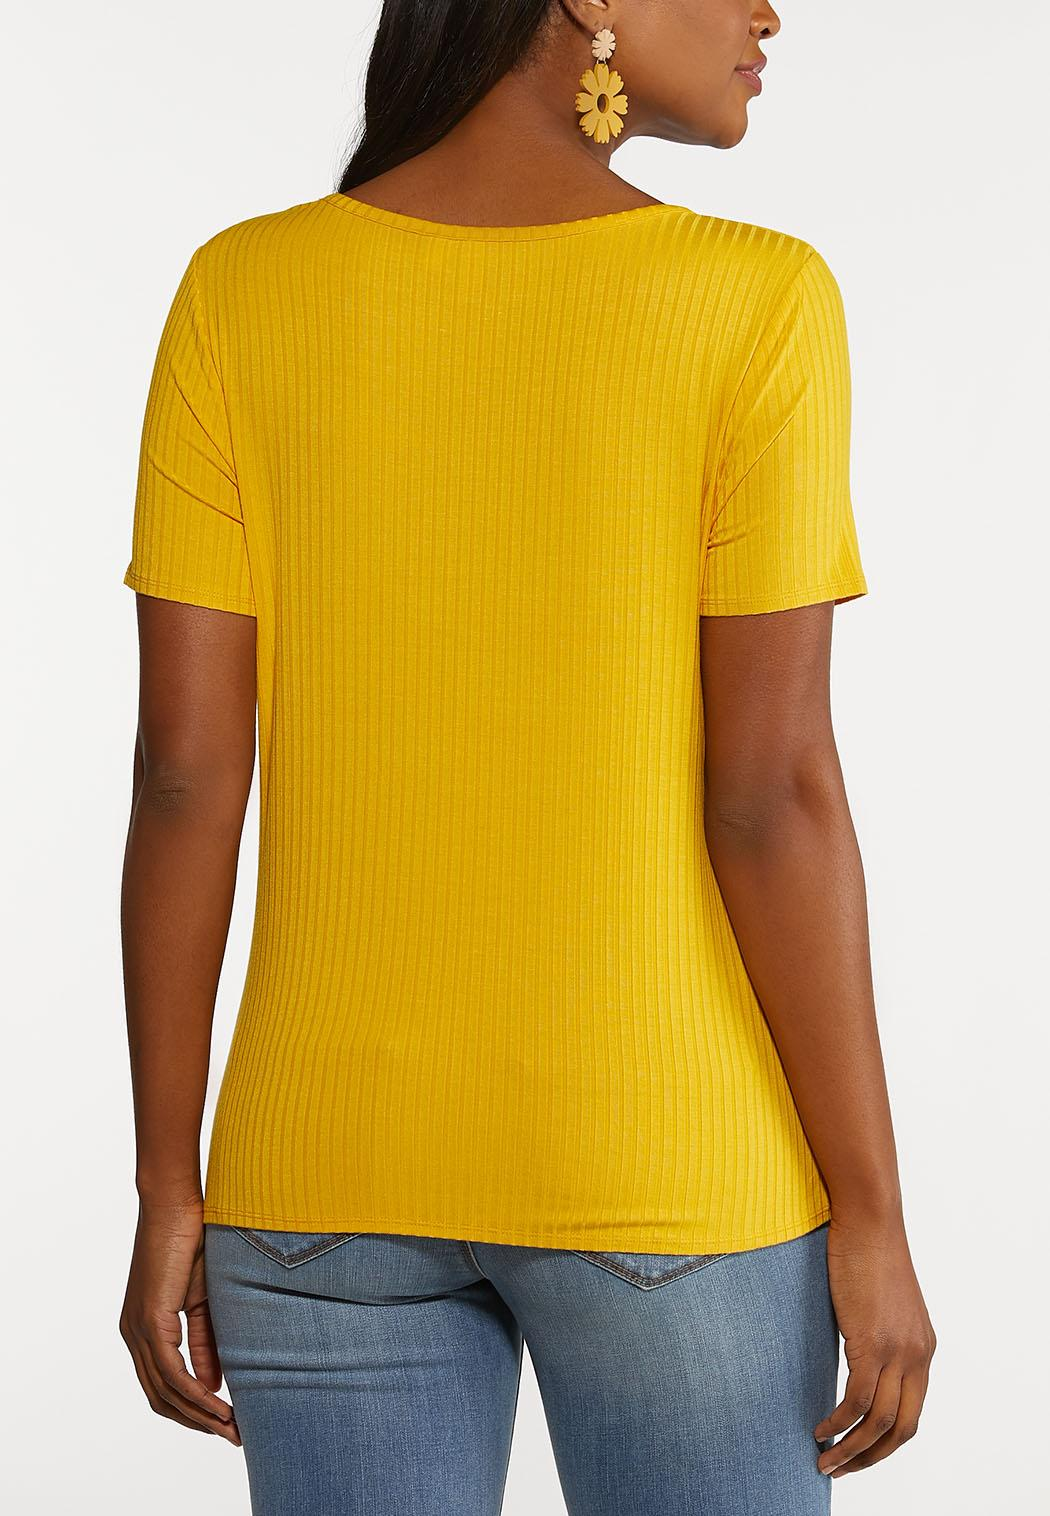 Ribbed Twisted Tee (Item #44191215)